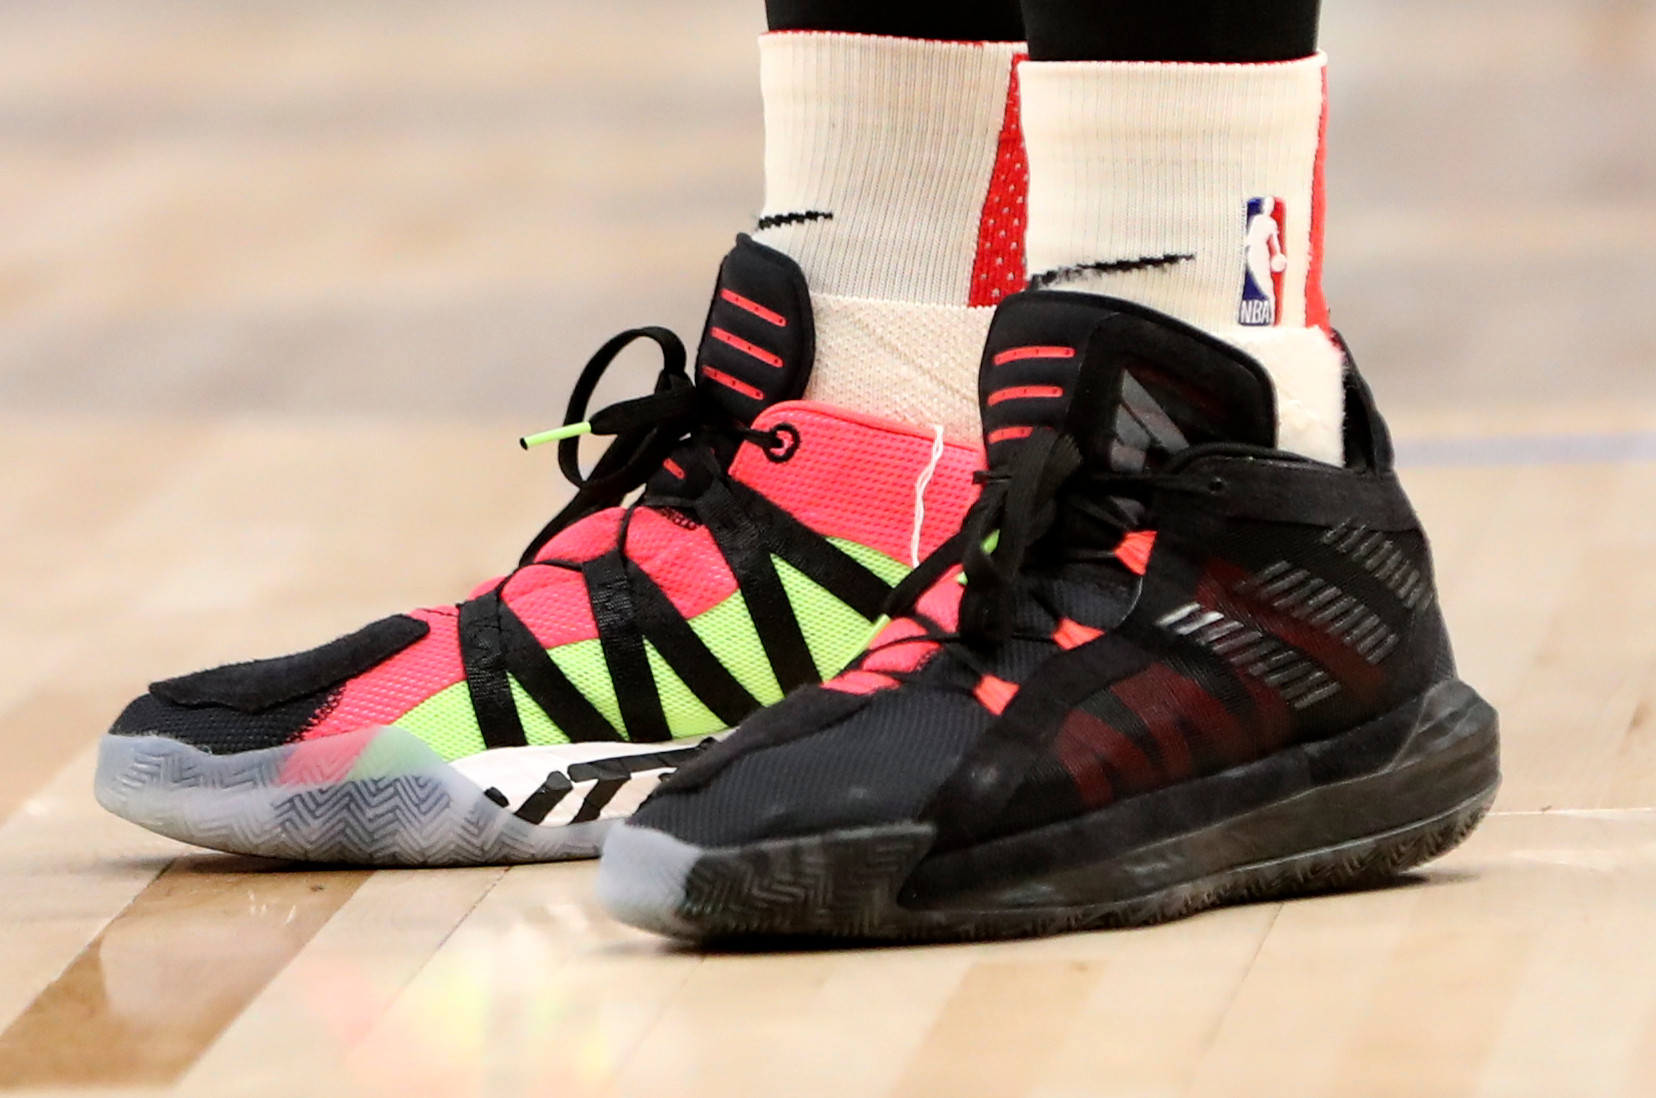 NBA signature sneakers: From most